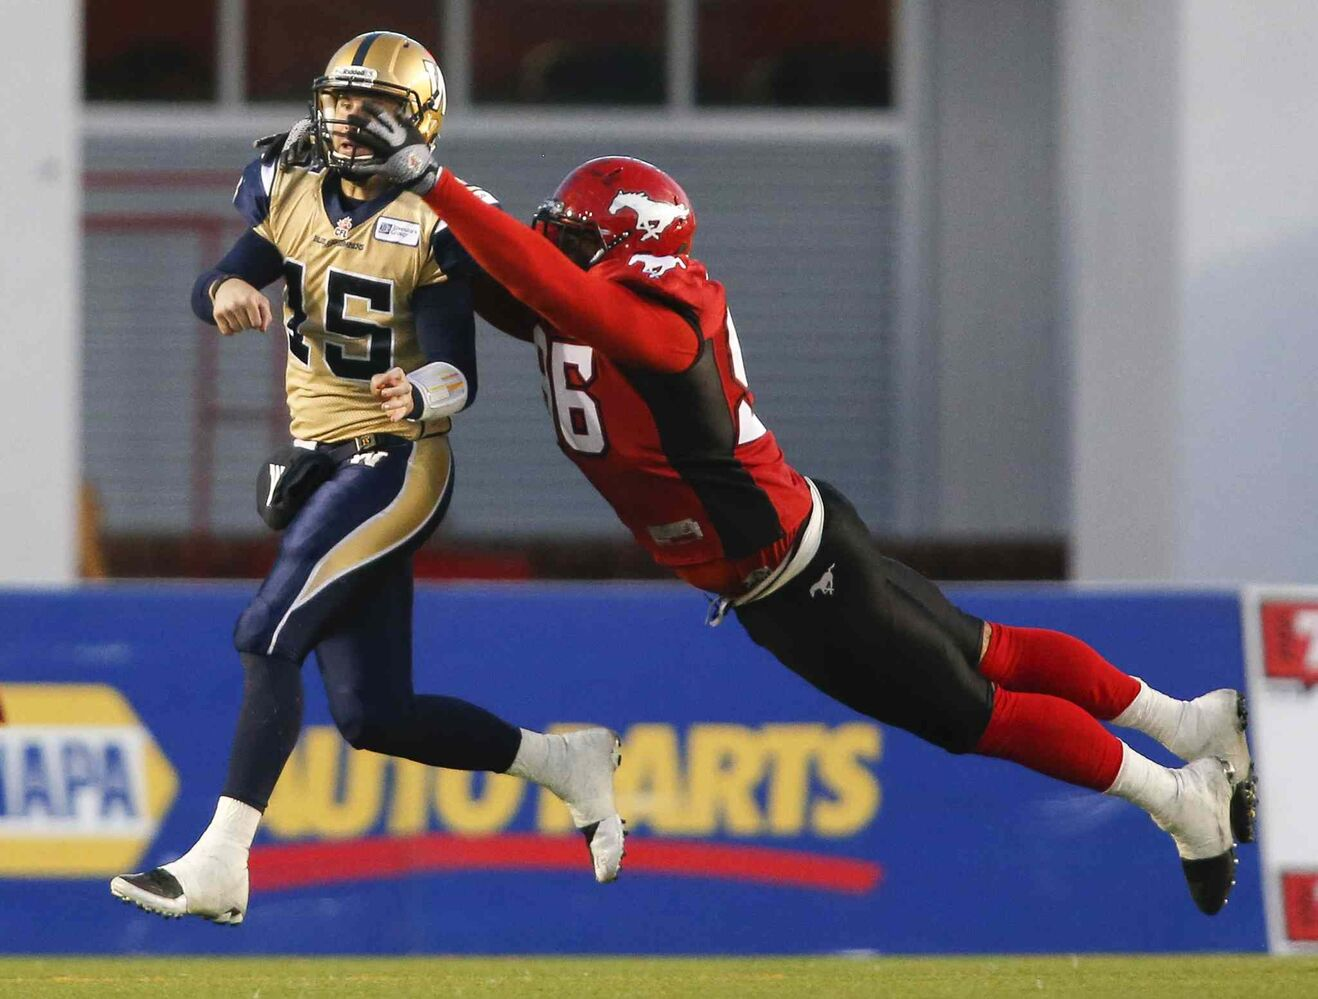 Winnipeg Blue Bombers quarterback Max Hall is tackled by Calgary Stampeders' Demonte Bolden during the second half. (Jeff McIntosh / The Canadian Press)